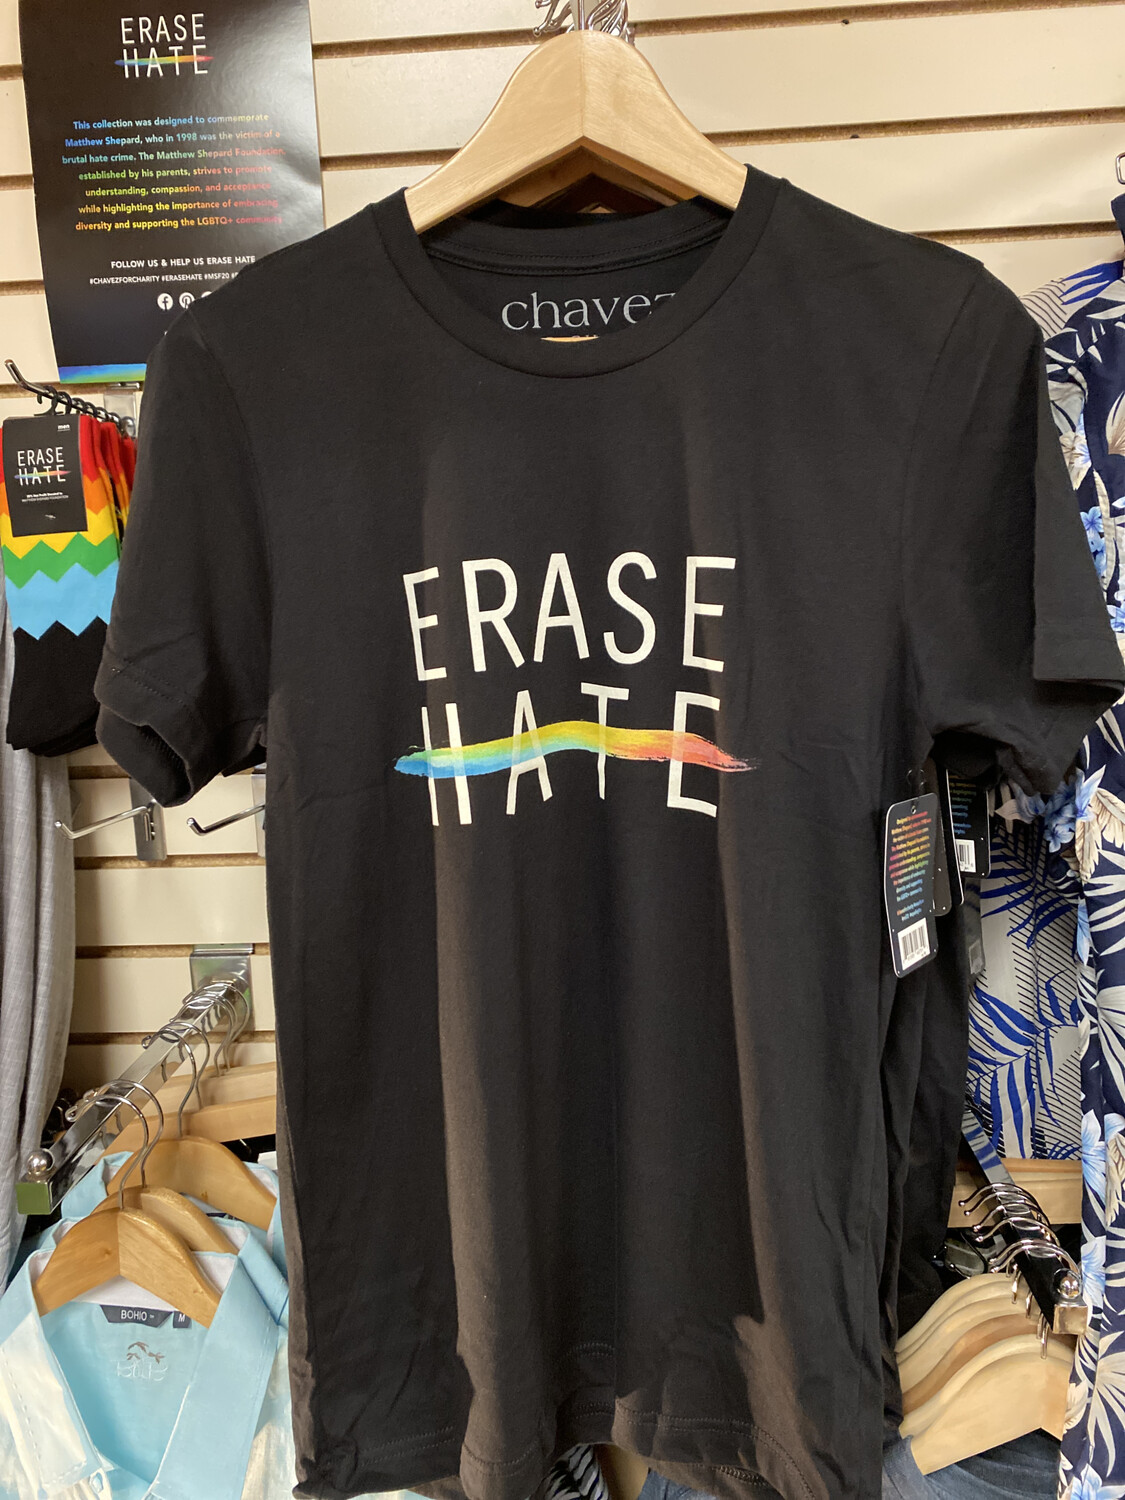 Erase Hate Tee The Mathew Shepard Foundation Xlarge